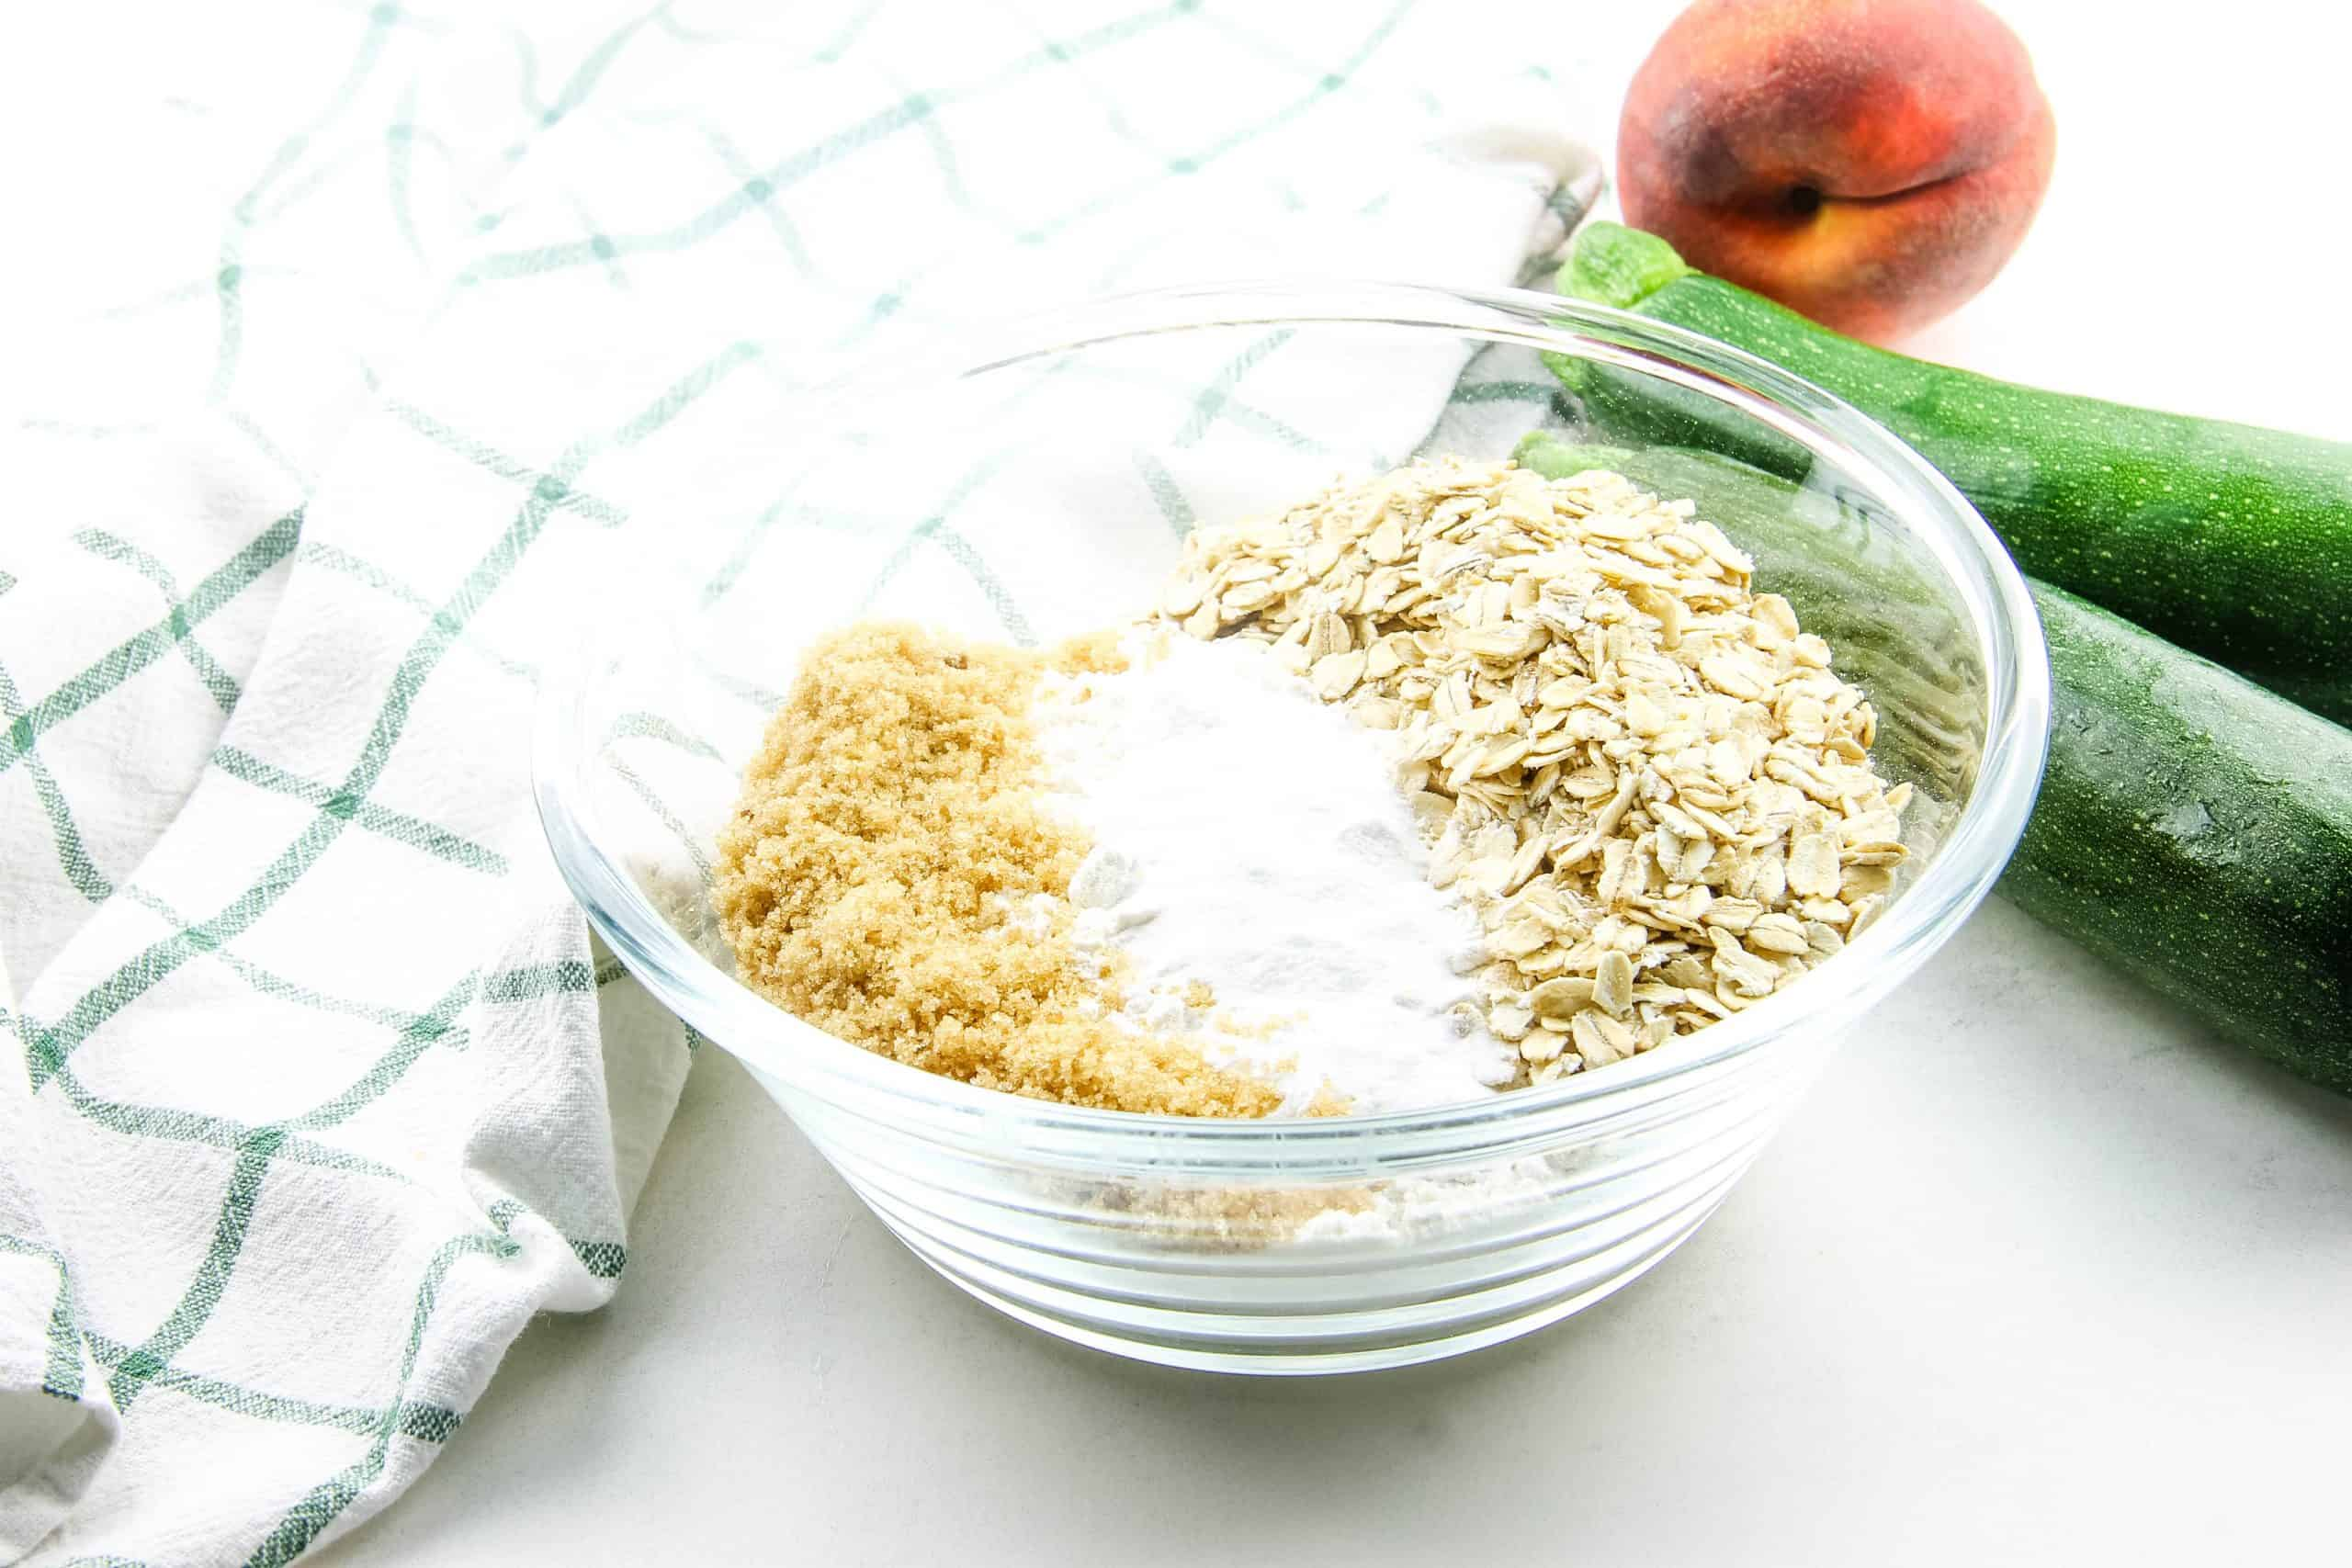 Peach Zucchini Oatmeal Muffins, dry ingredients in glass bowl